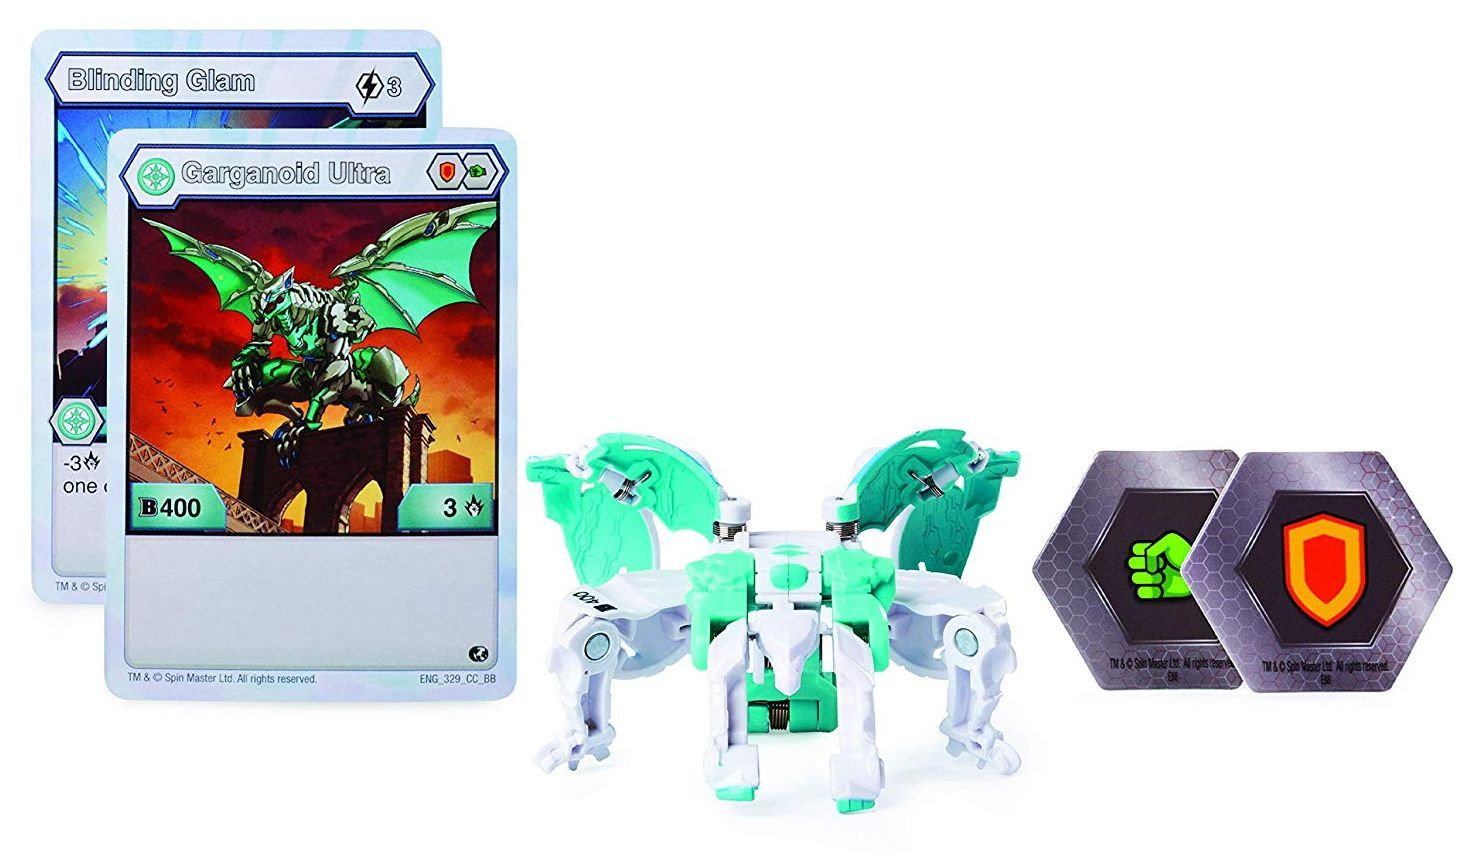 Игрален комплект Spin Master Bakugan Battle Planet - Ултра топче, асортимент - 5